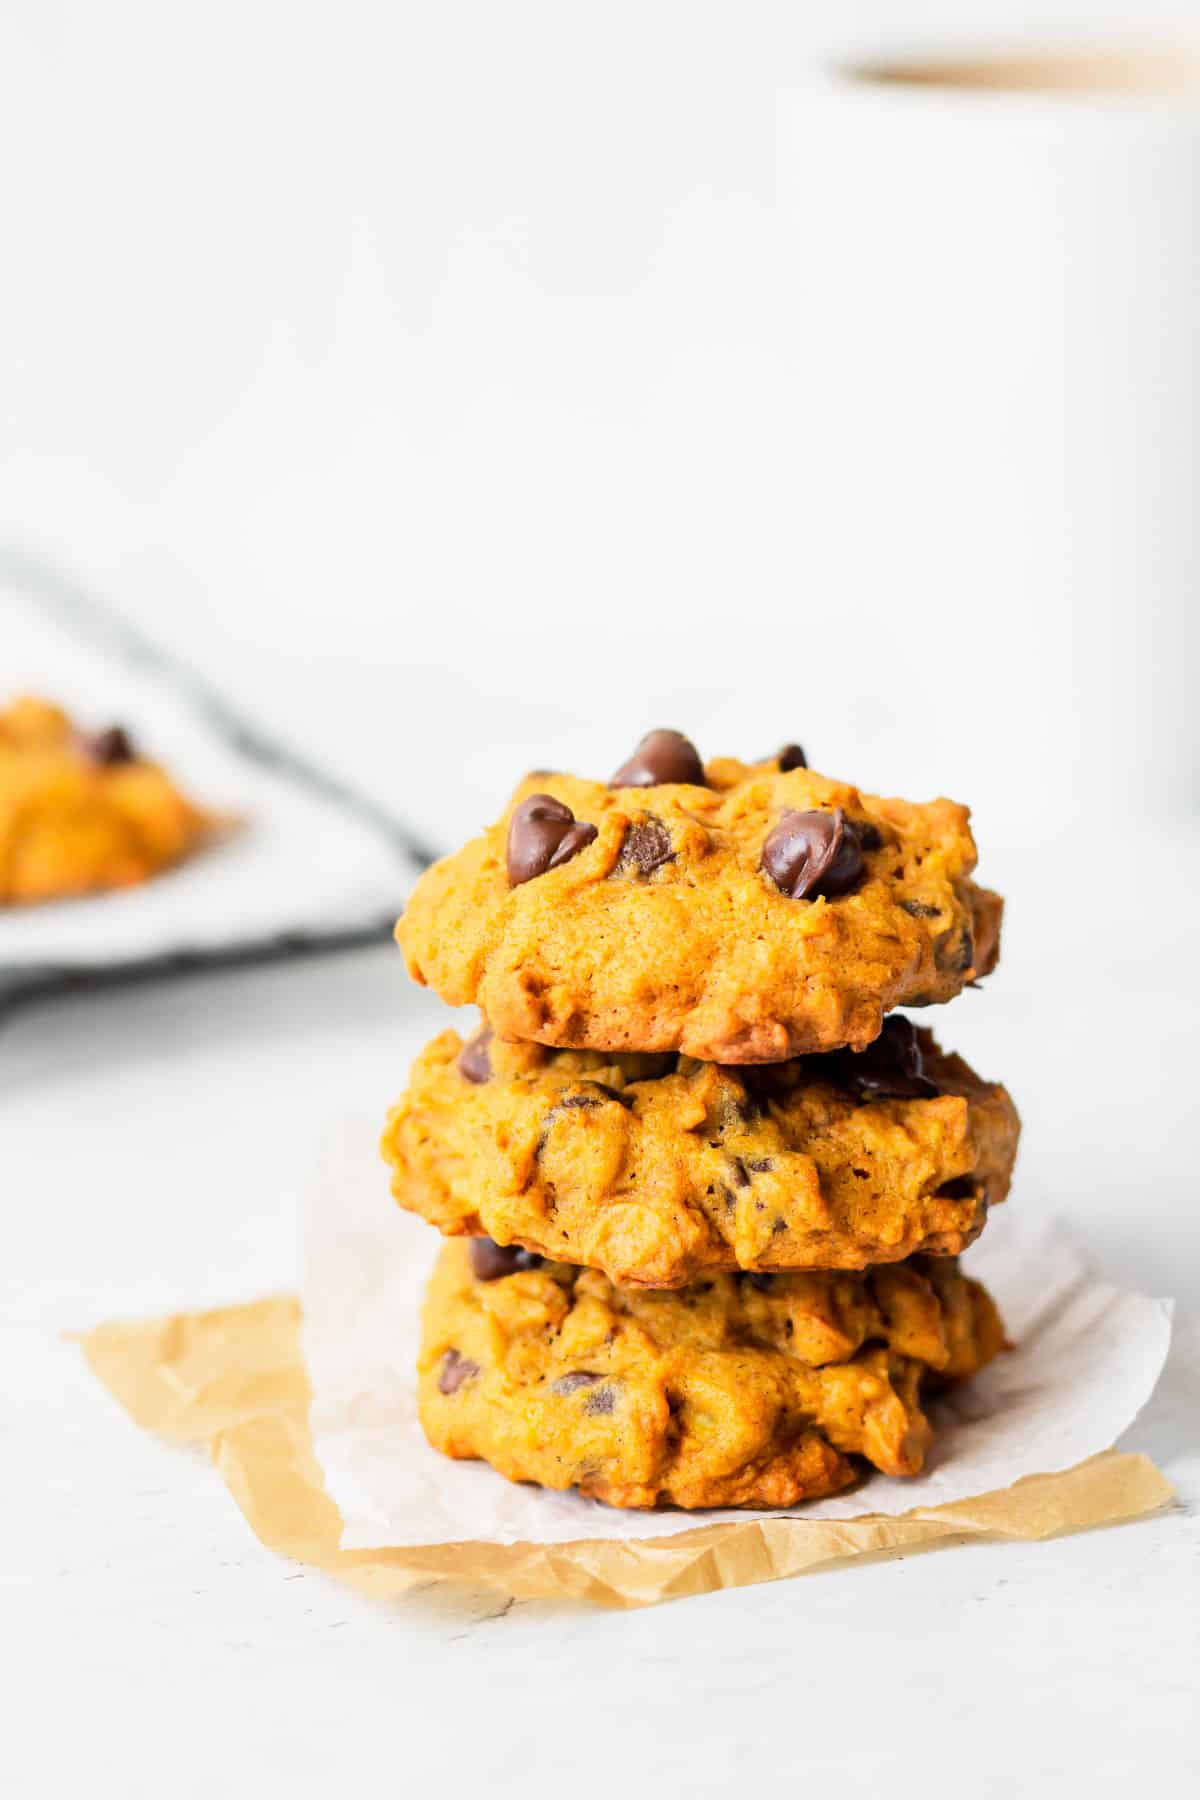 3 Pumpkin chocolate chip cookies stacked on top of each other with a mug and cooling rack with more cookies on it in the background